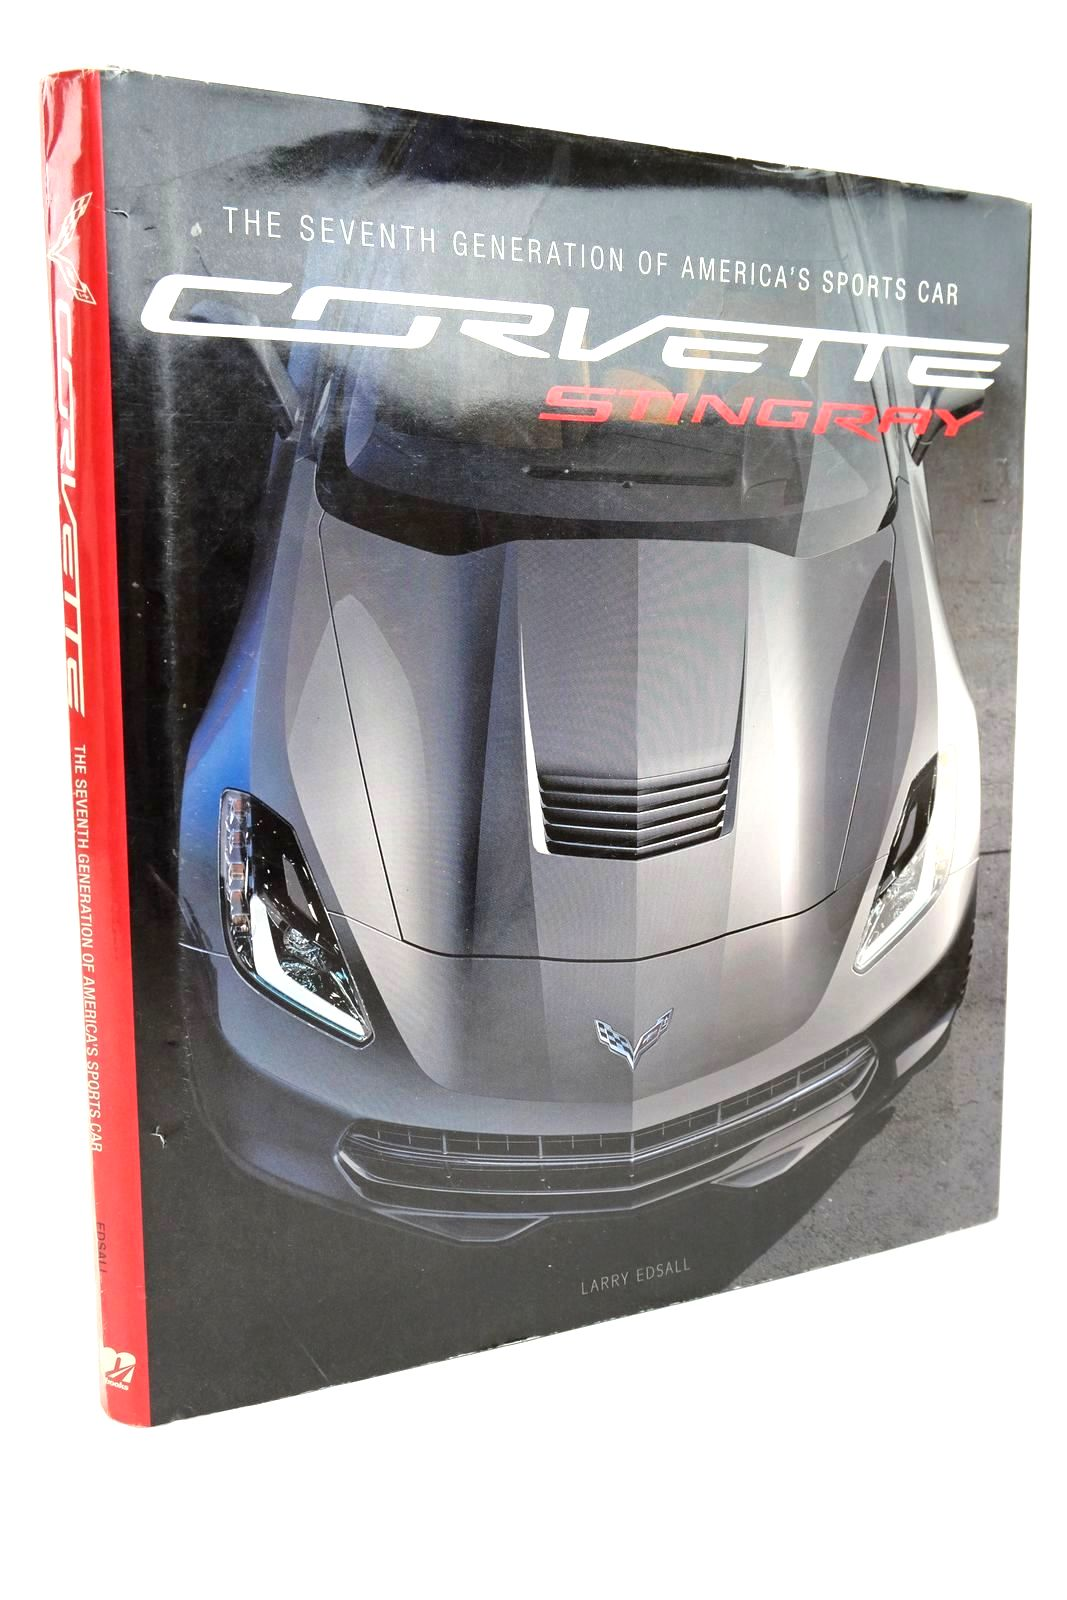 Photo of CORVETTE STINGRAY - THE SEVENTH GENERATION OF AMERICA'S SPORTS CAR written by Edsall, Larry published by Motorbooks (STOCK CODE: 1321226)  for sale by Stella & Rose's Books